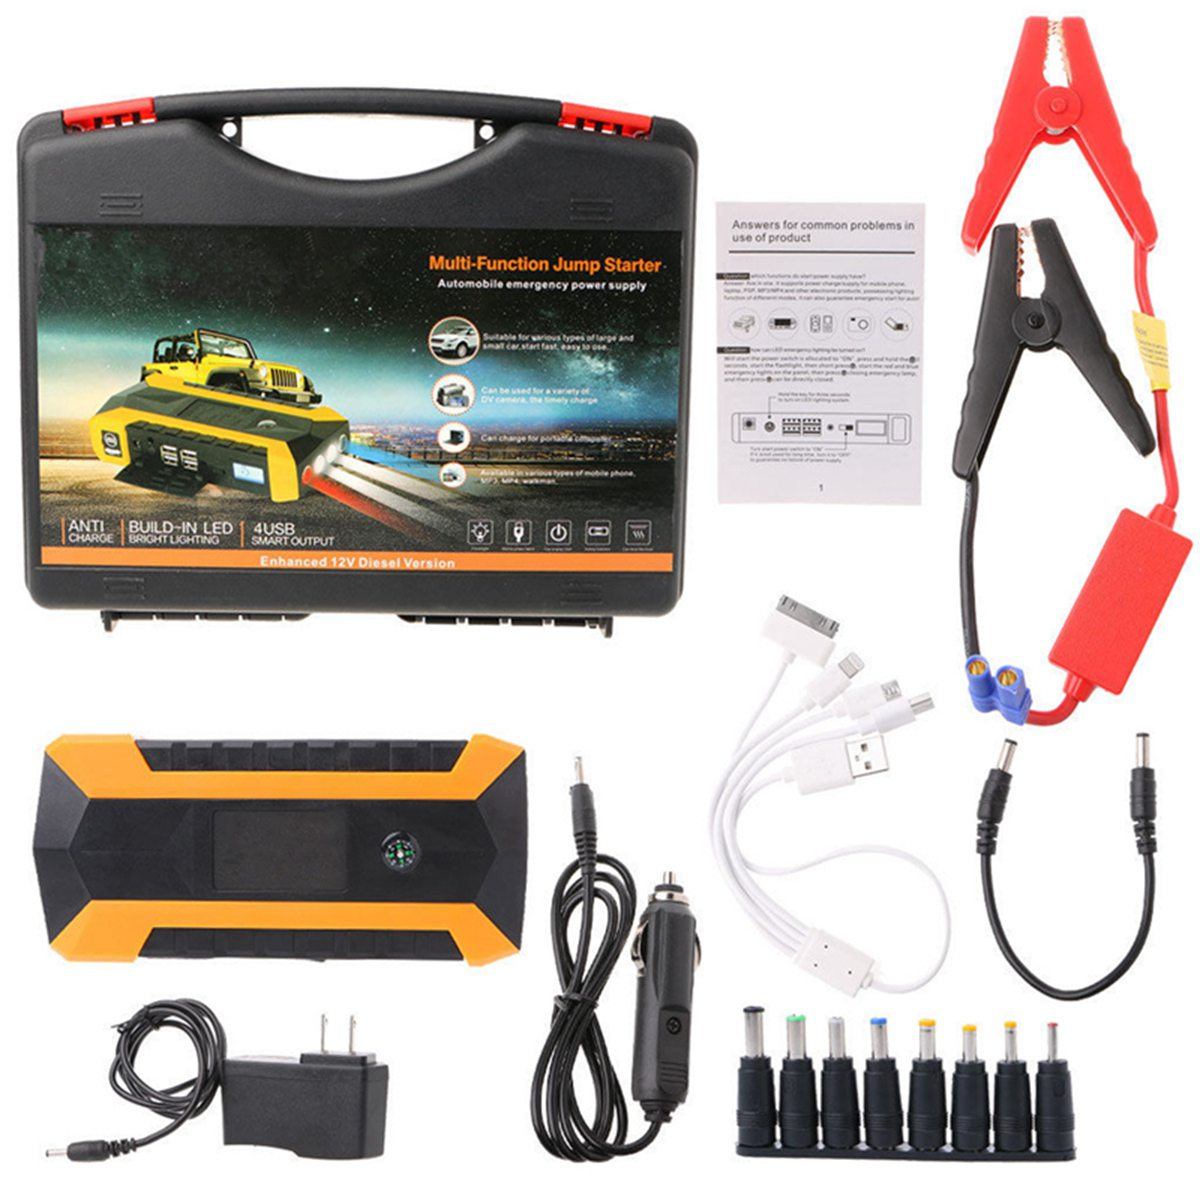 89800mAh Car Jump Starter 12V 4USB 600A Portable Car Battery Booster Charger Booster Power Bank Starting Device Car Starter car jump starter emergency 69800mah 12v starting device 4usb sos light mobile power bank car charger for car battery booster led